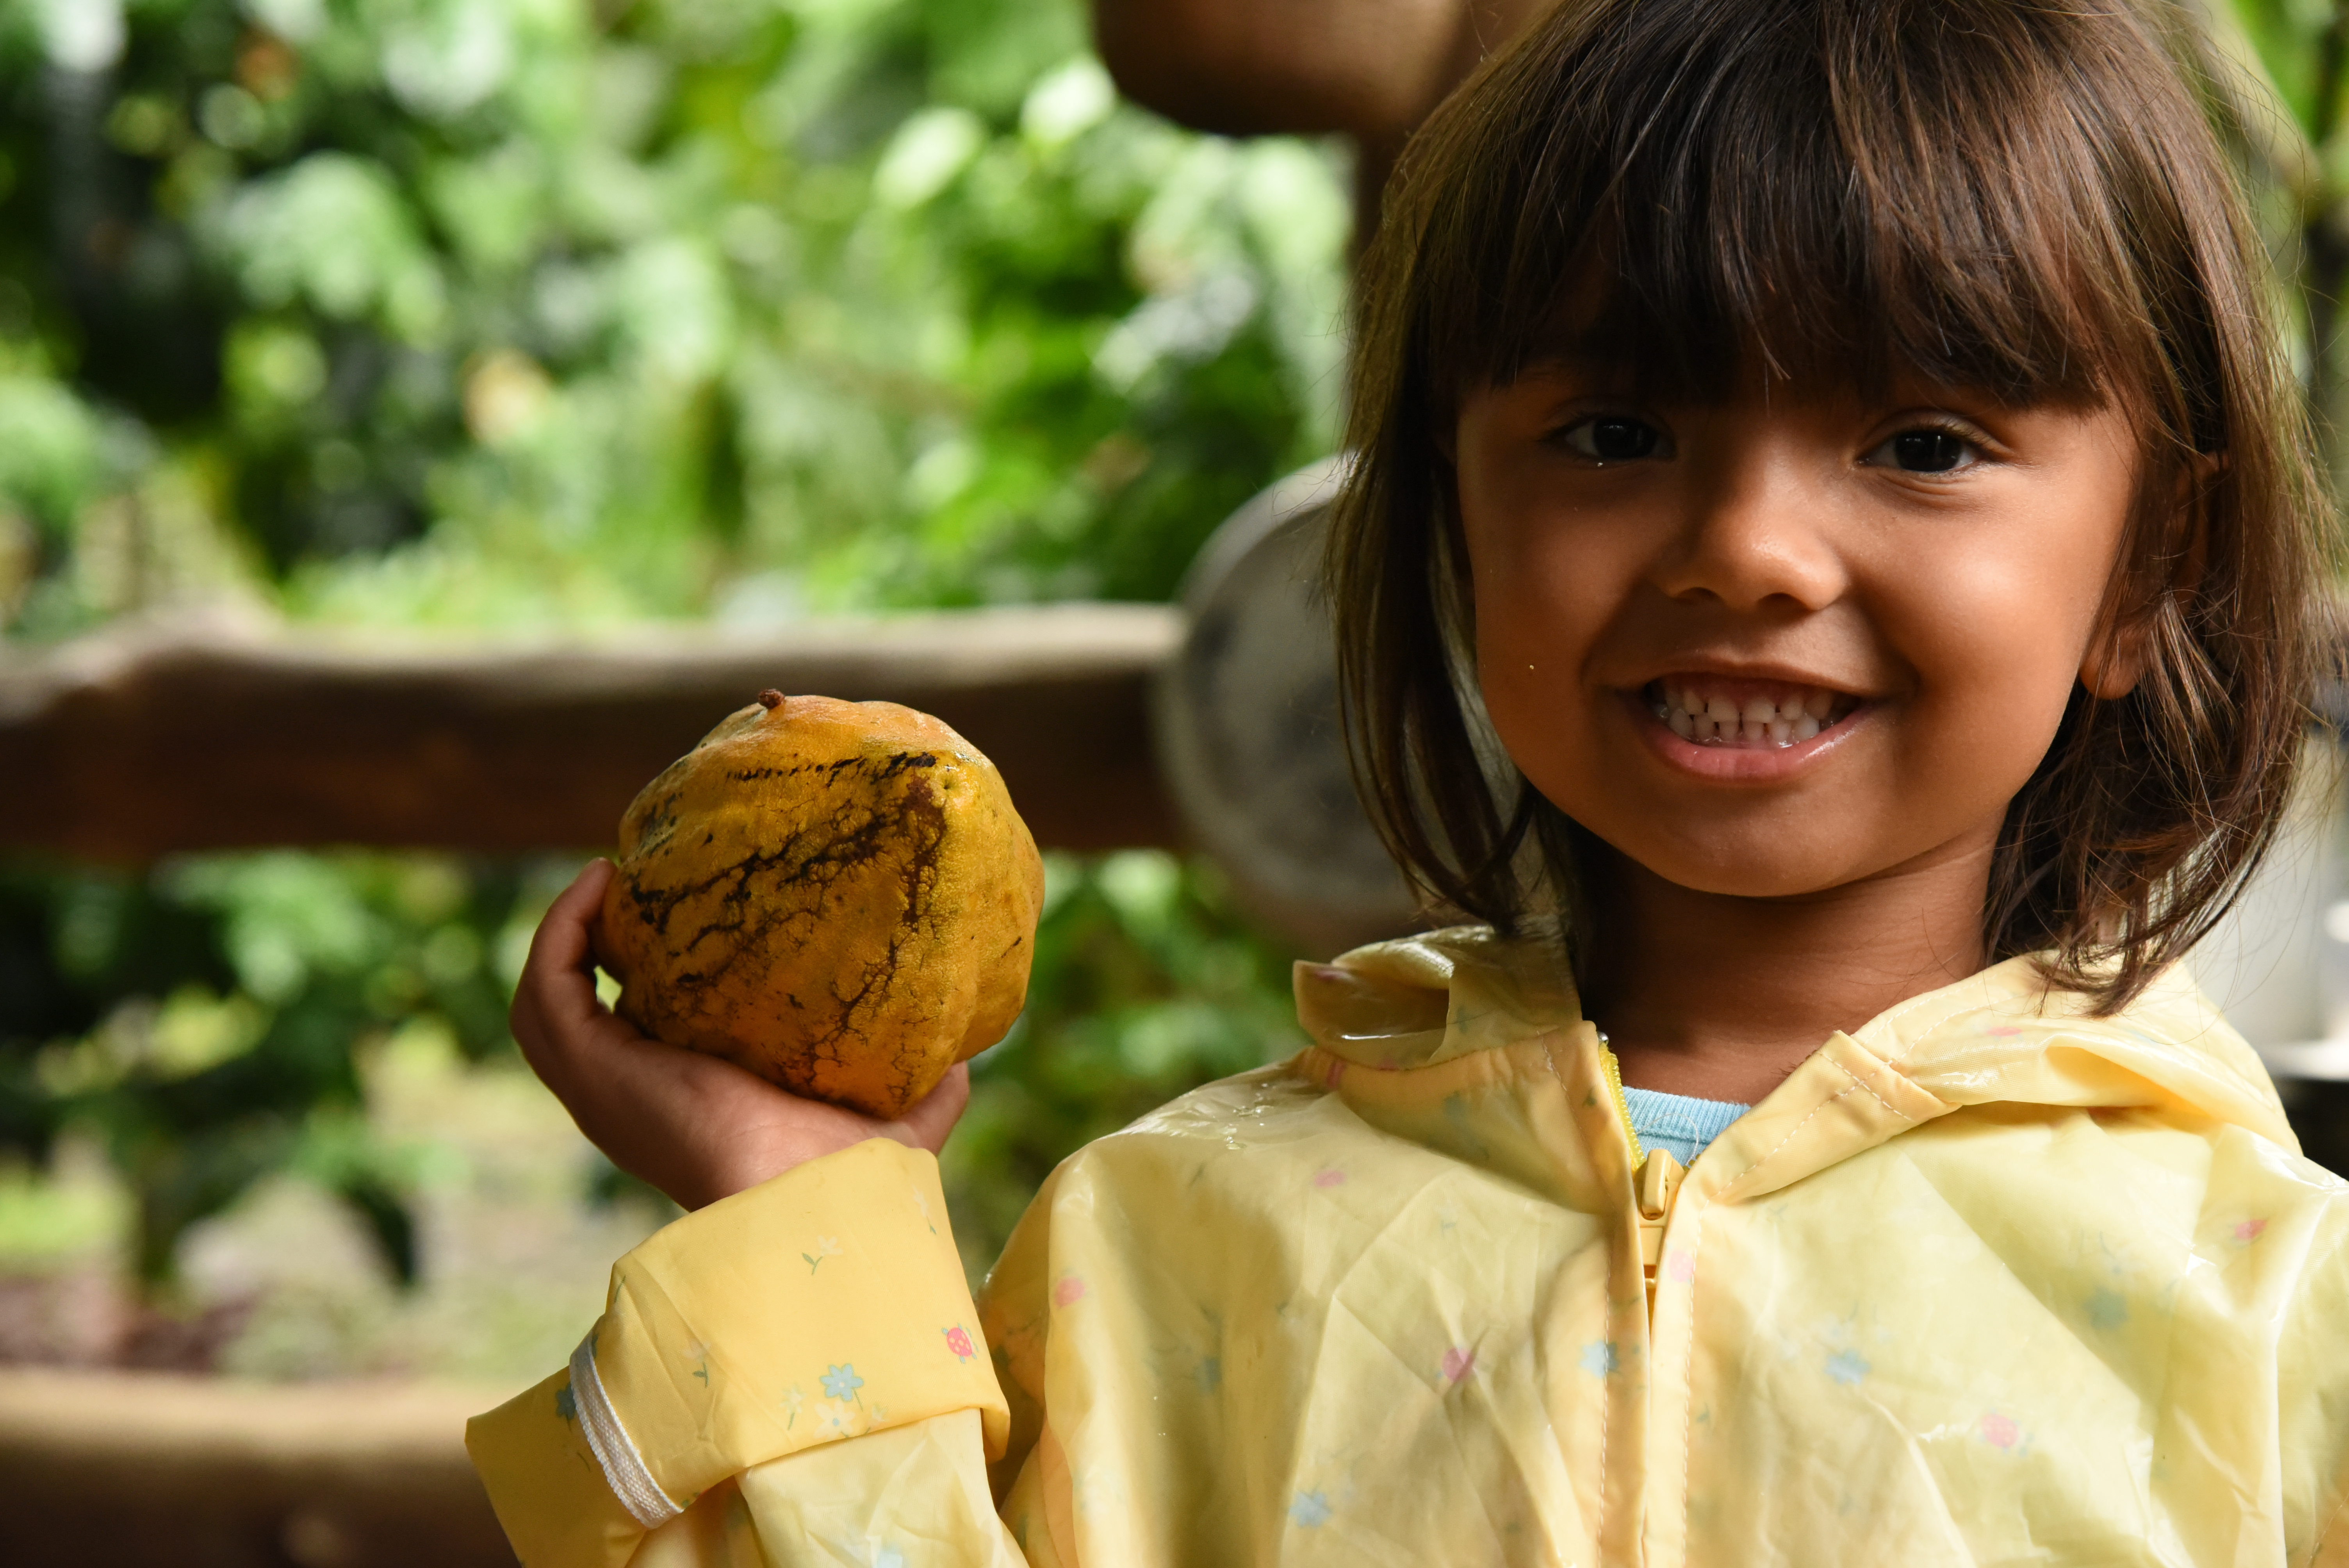 Learn about how to make chocolate from the cacao seeds in Cost Rica. Great tour for kids of all ages!